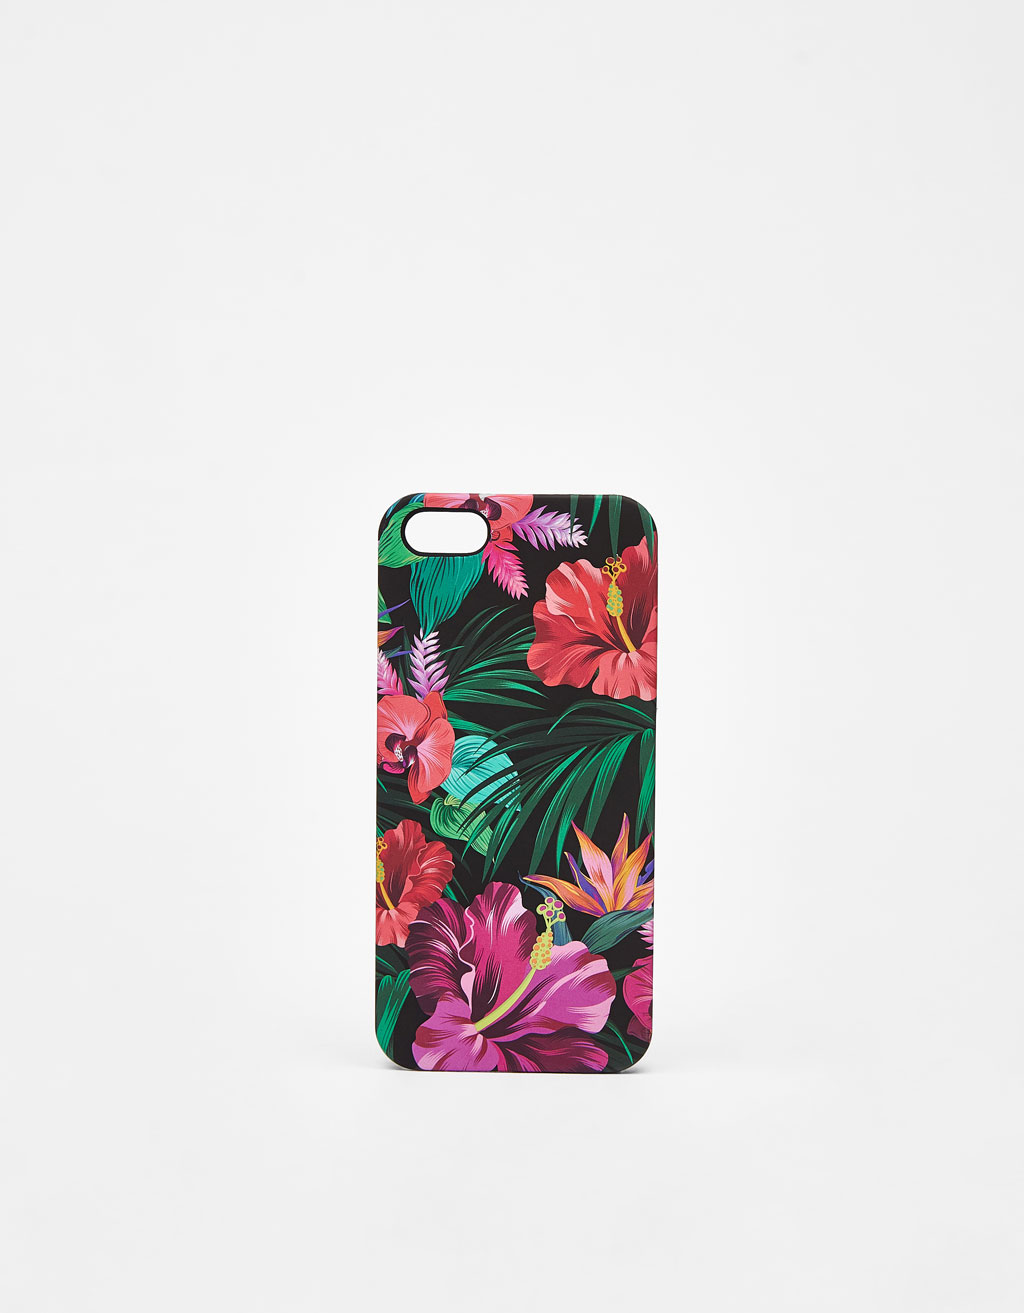 Tropical flower iPhone 5/5s case